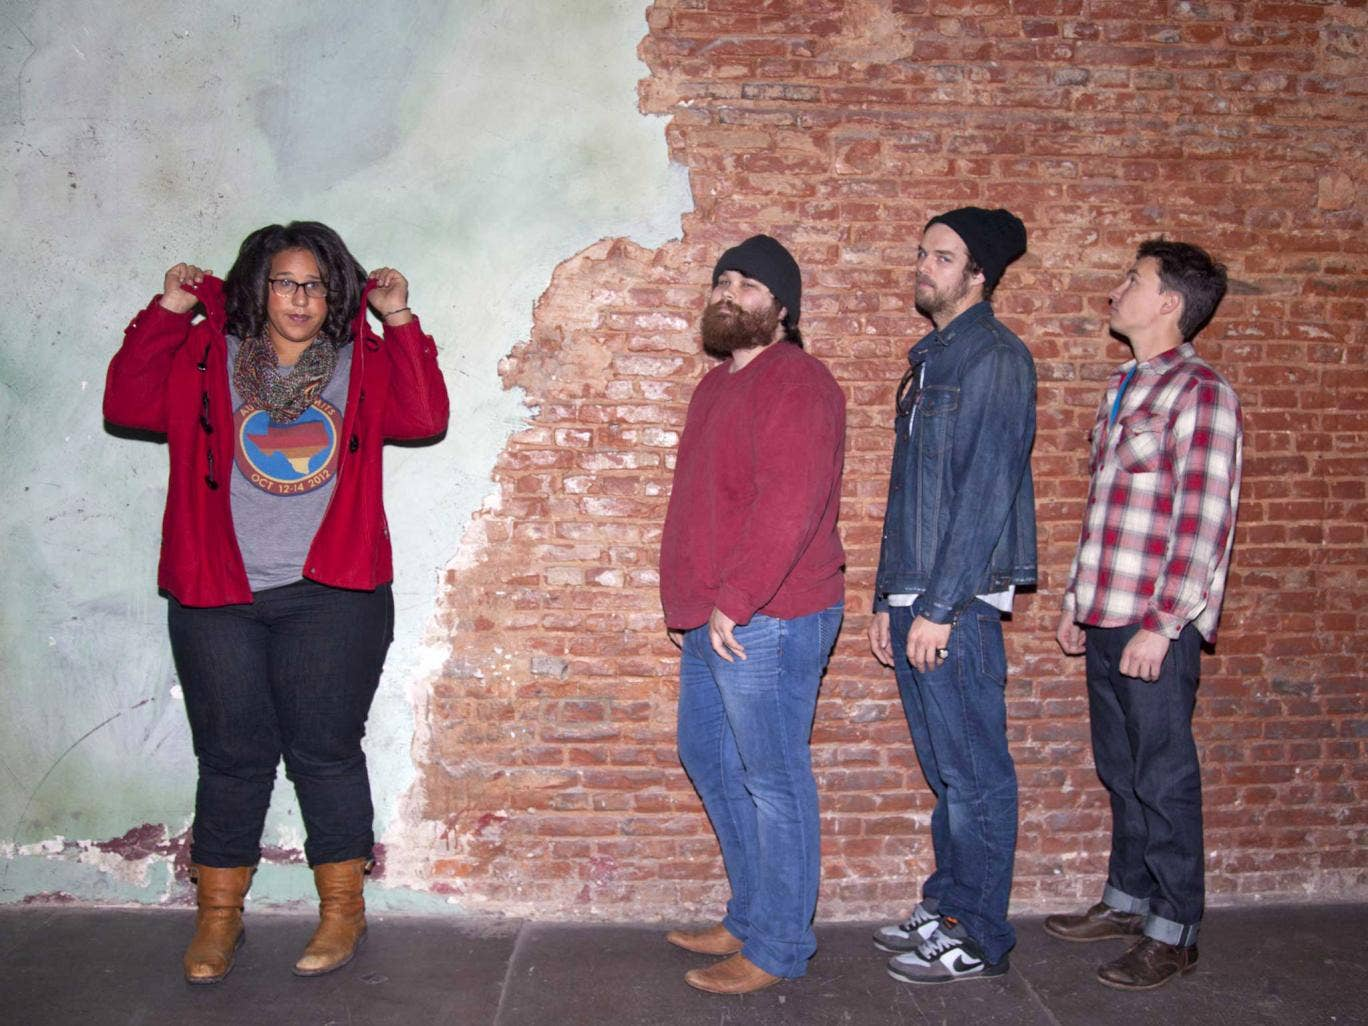 Alabama Shakes' success one of the year's most heartwarming stories